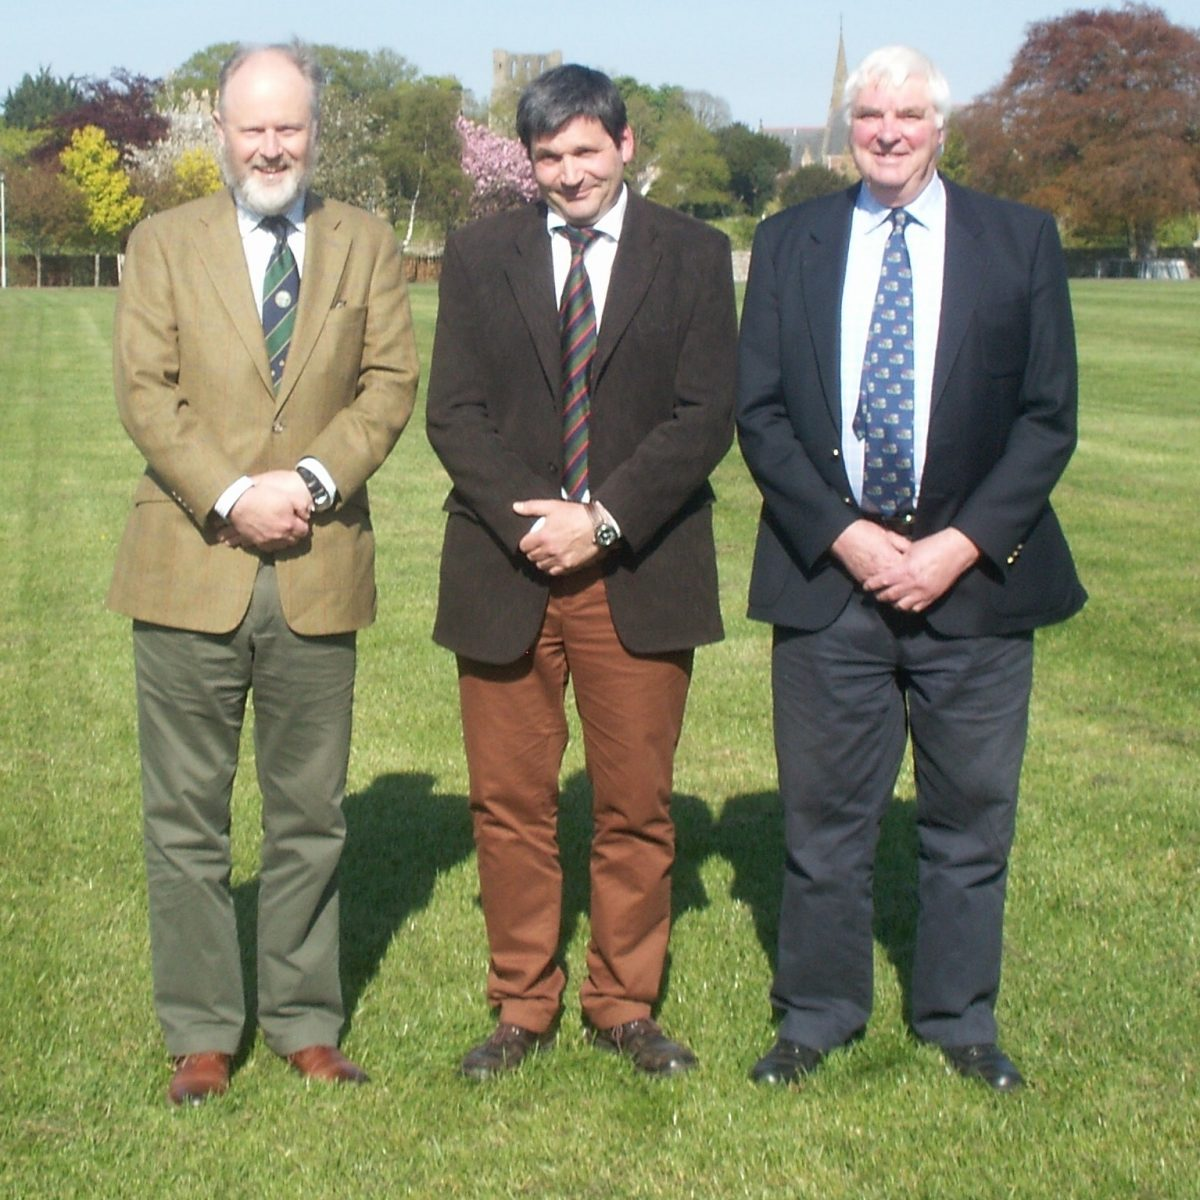 Derek Robeson, a successful applicant for the BUAS Bursary award. A funding imitative in the Scottish Borders.